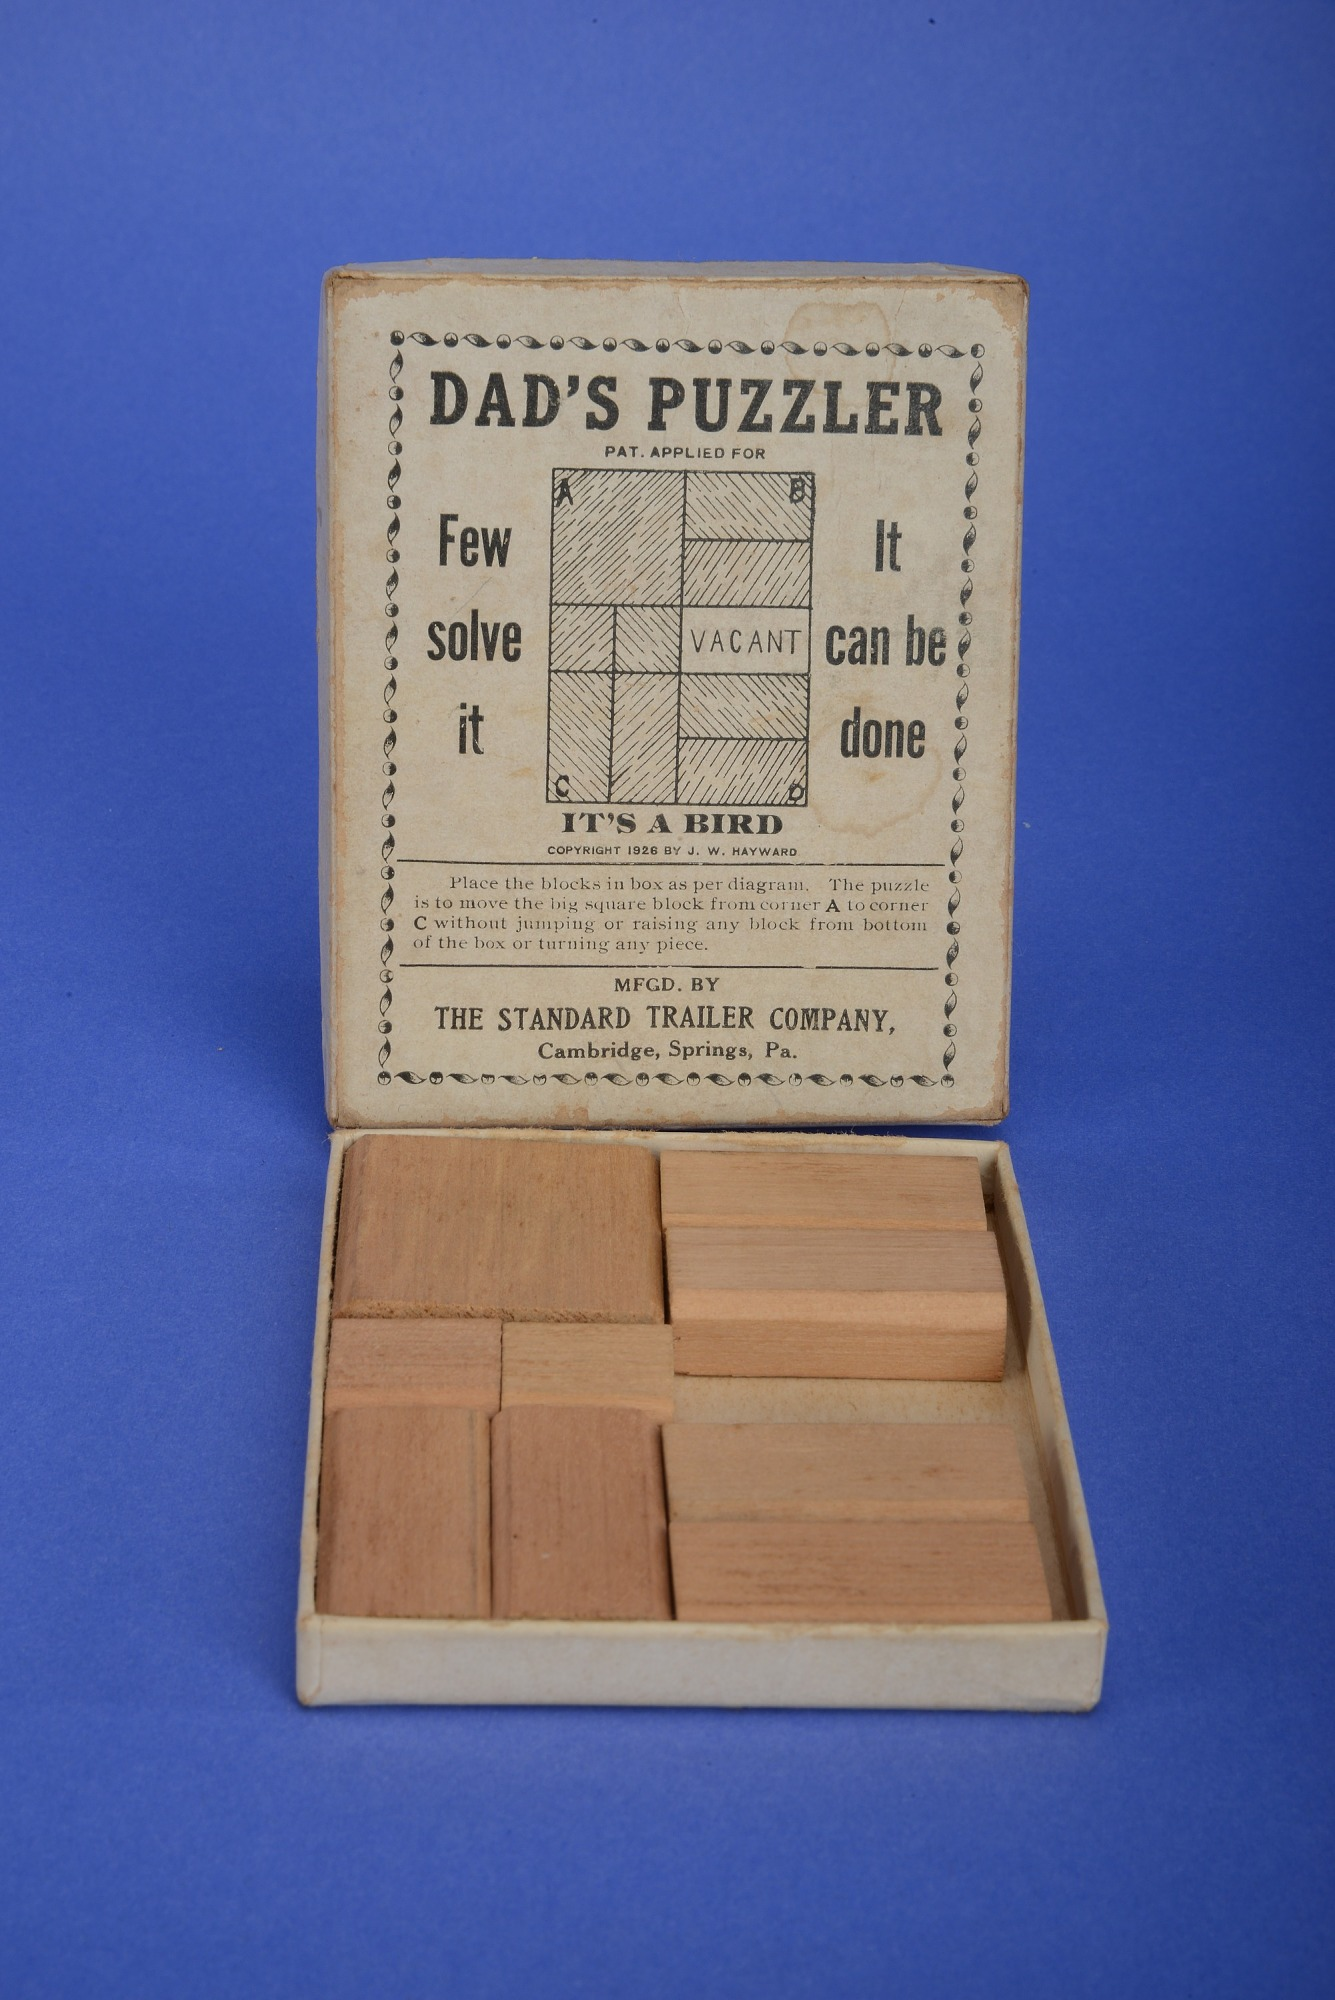 worksheet Place Value Puzzler dads puzzler once owned by olive c hazlett national museum of hazlett